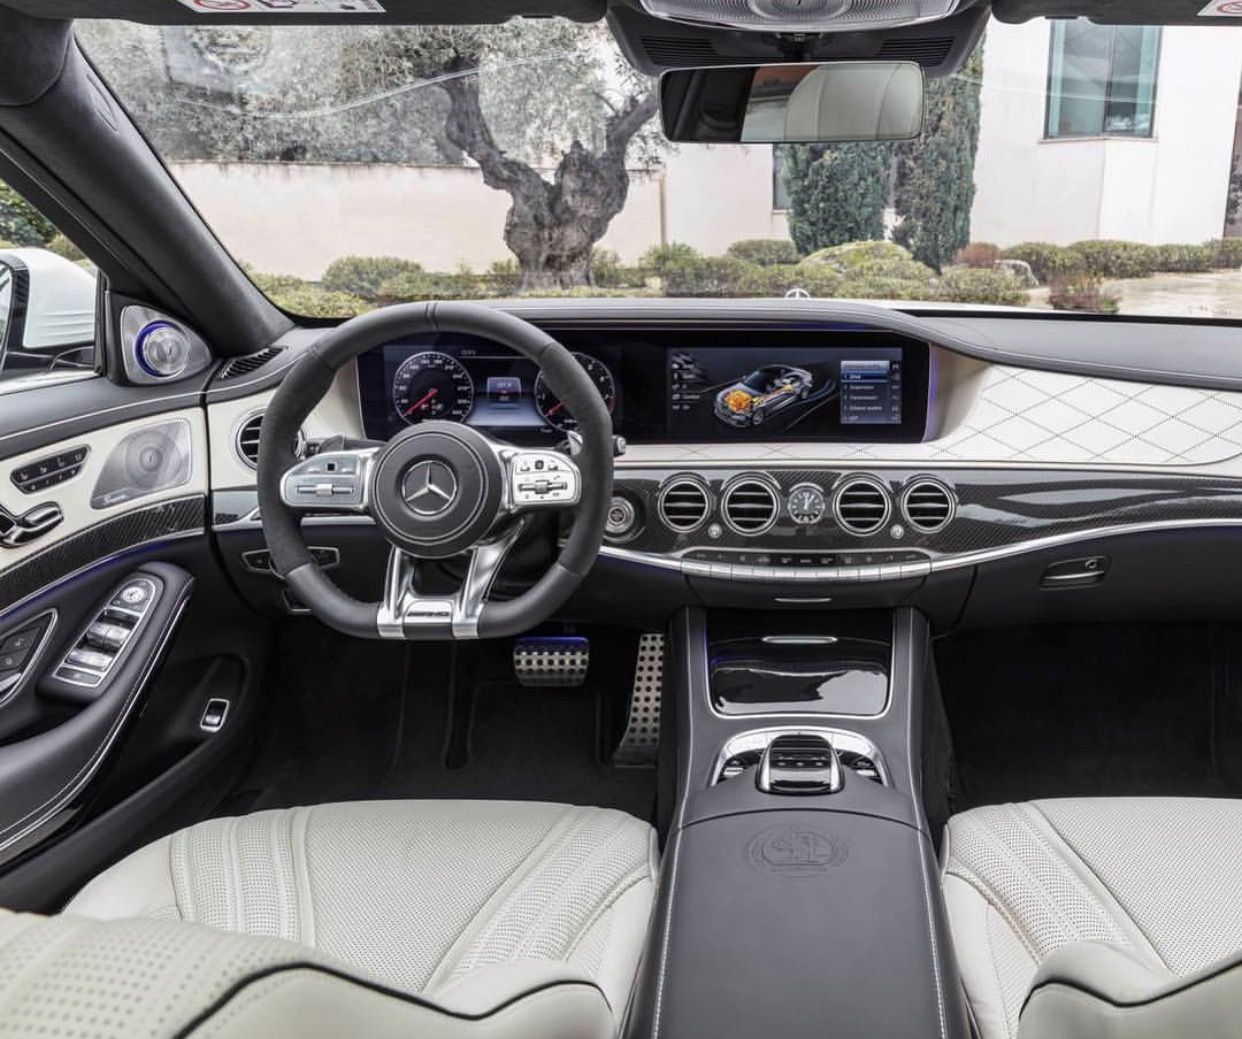 2019 Mercedes Amg E63 S Wagon: All New 2018 Mercedes-Benz S63 AMG Interior.